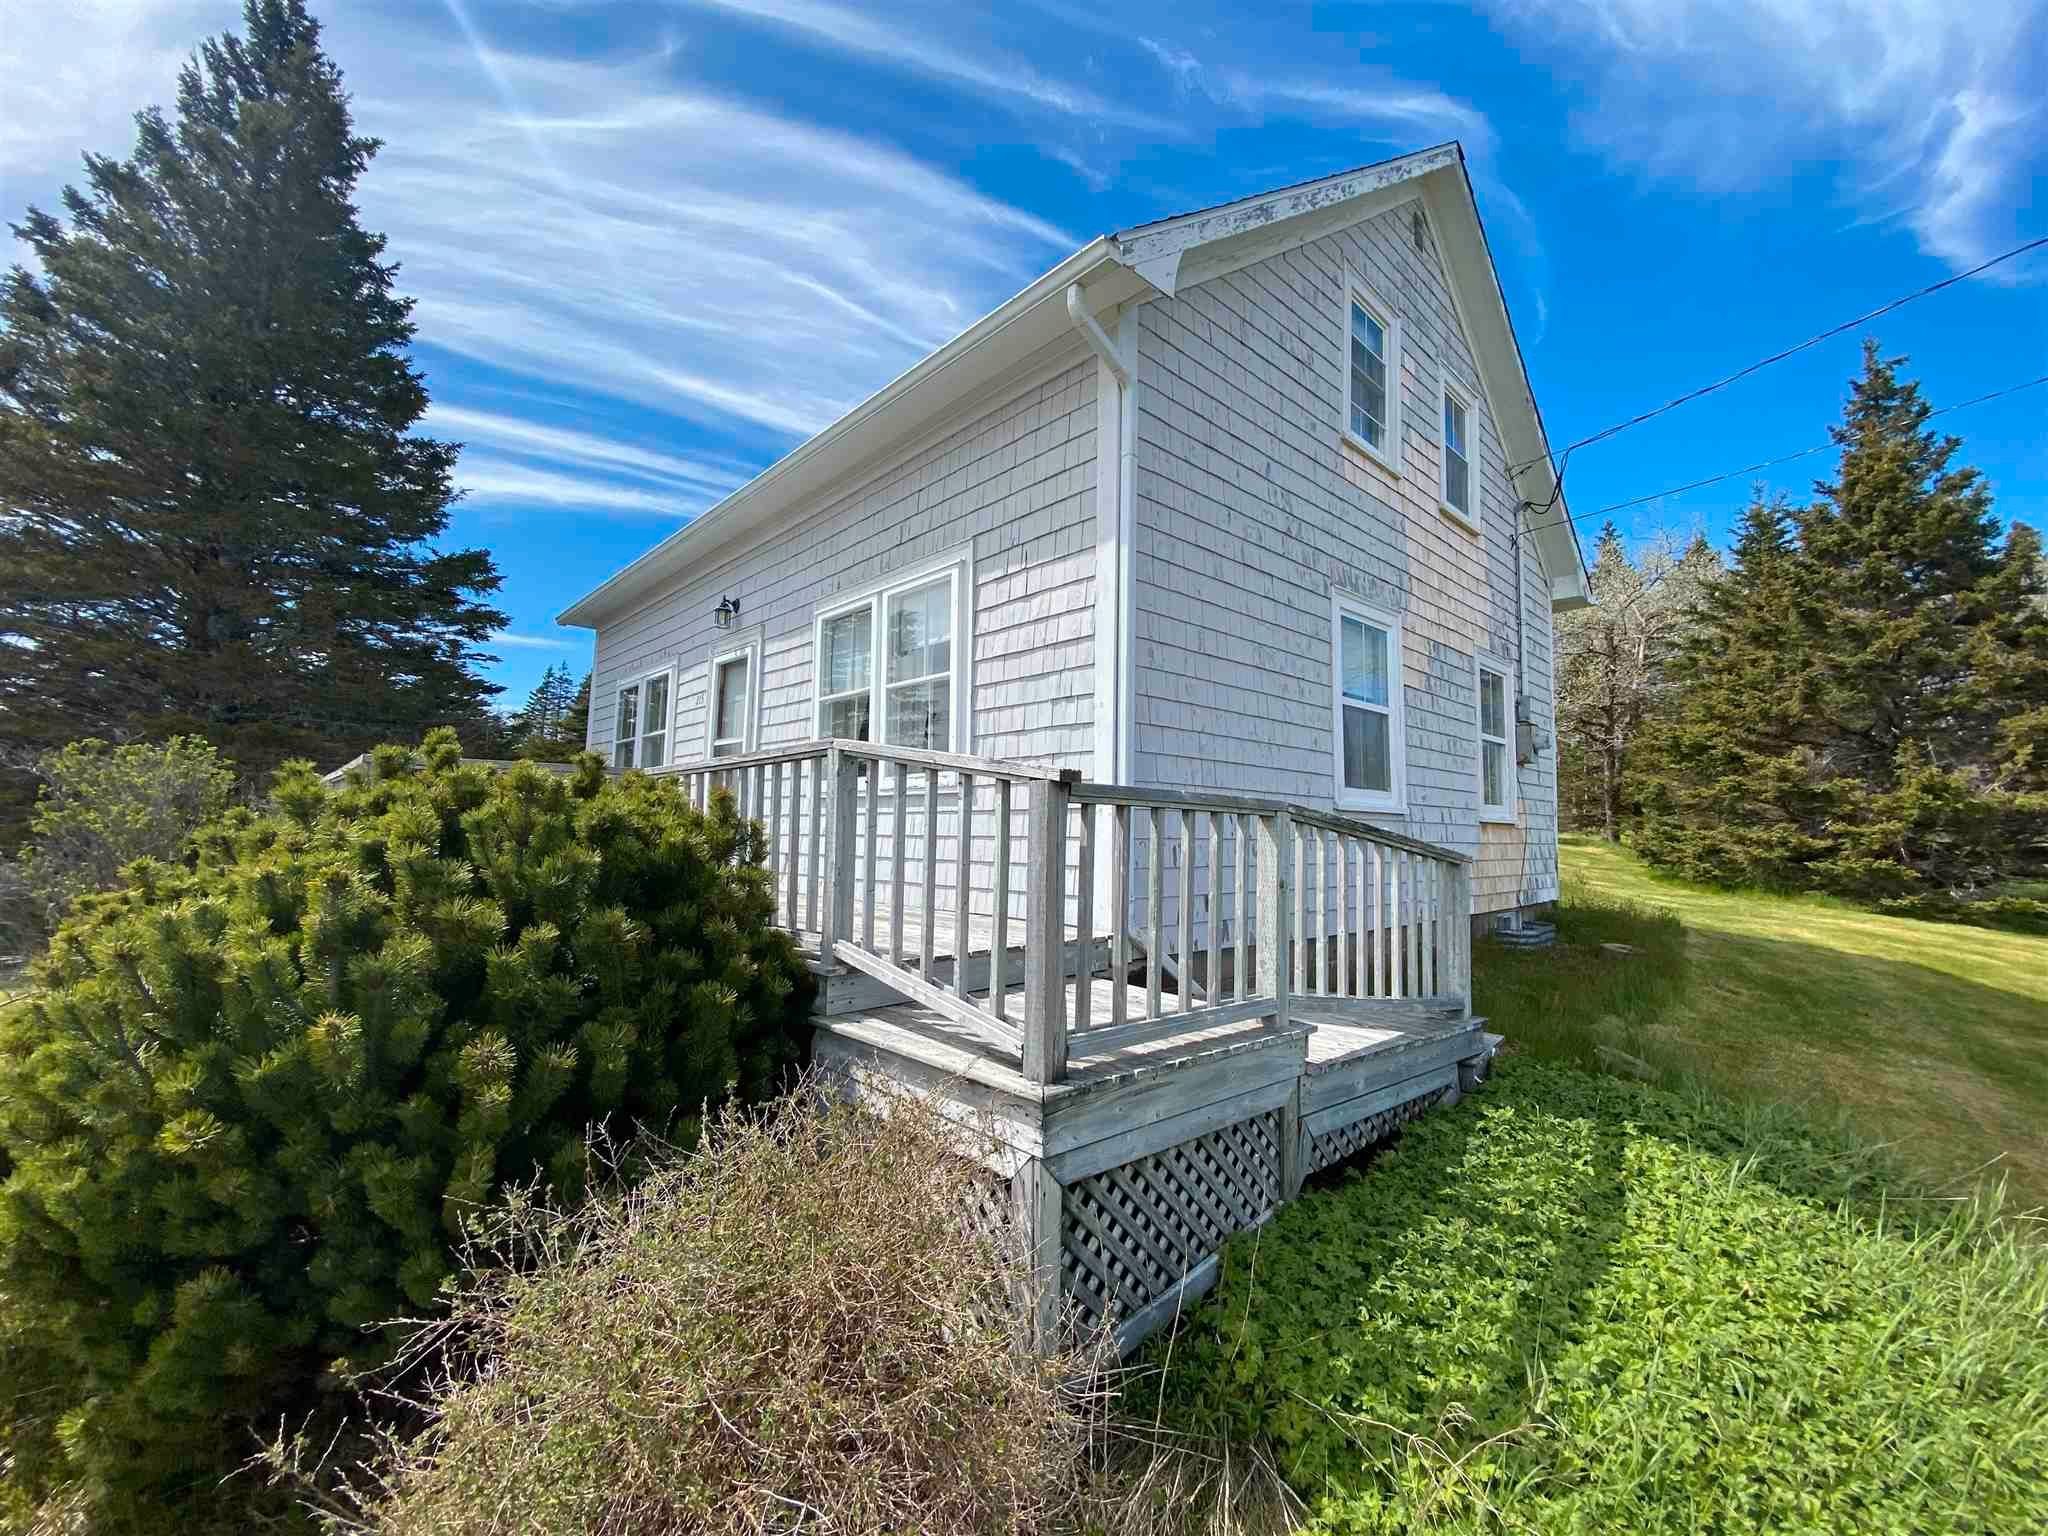 Main Photo: 215 Wine Harbour Road in Wine Harbour: 303-Guysborough County Residential for sale (Highland Region)  : MLS®# 202115500